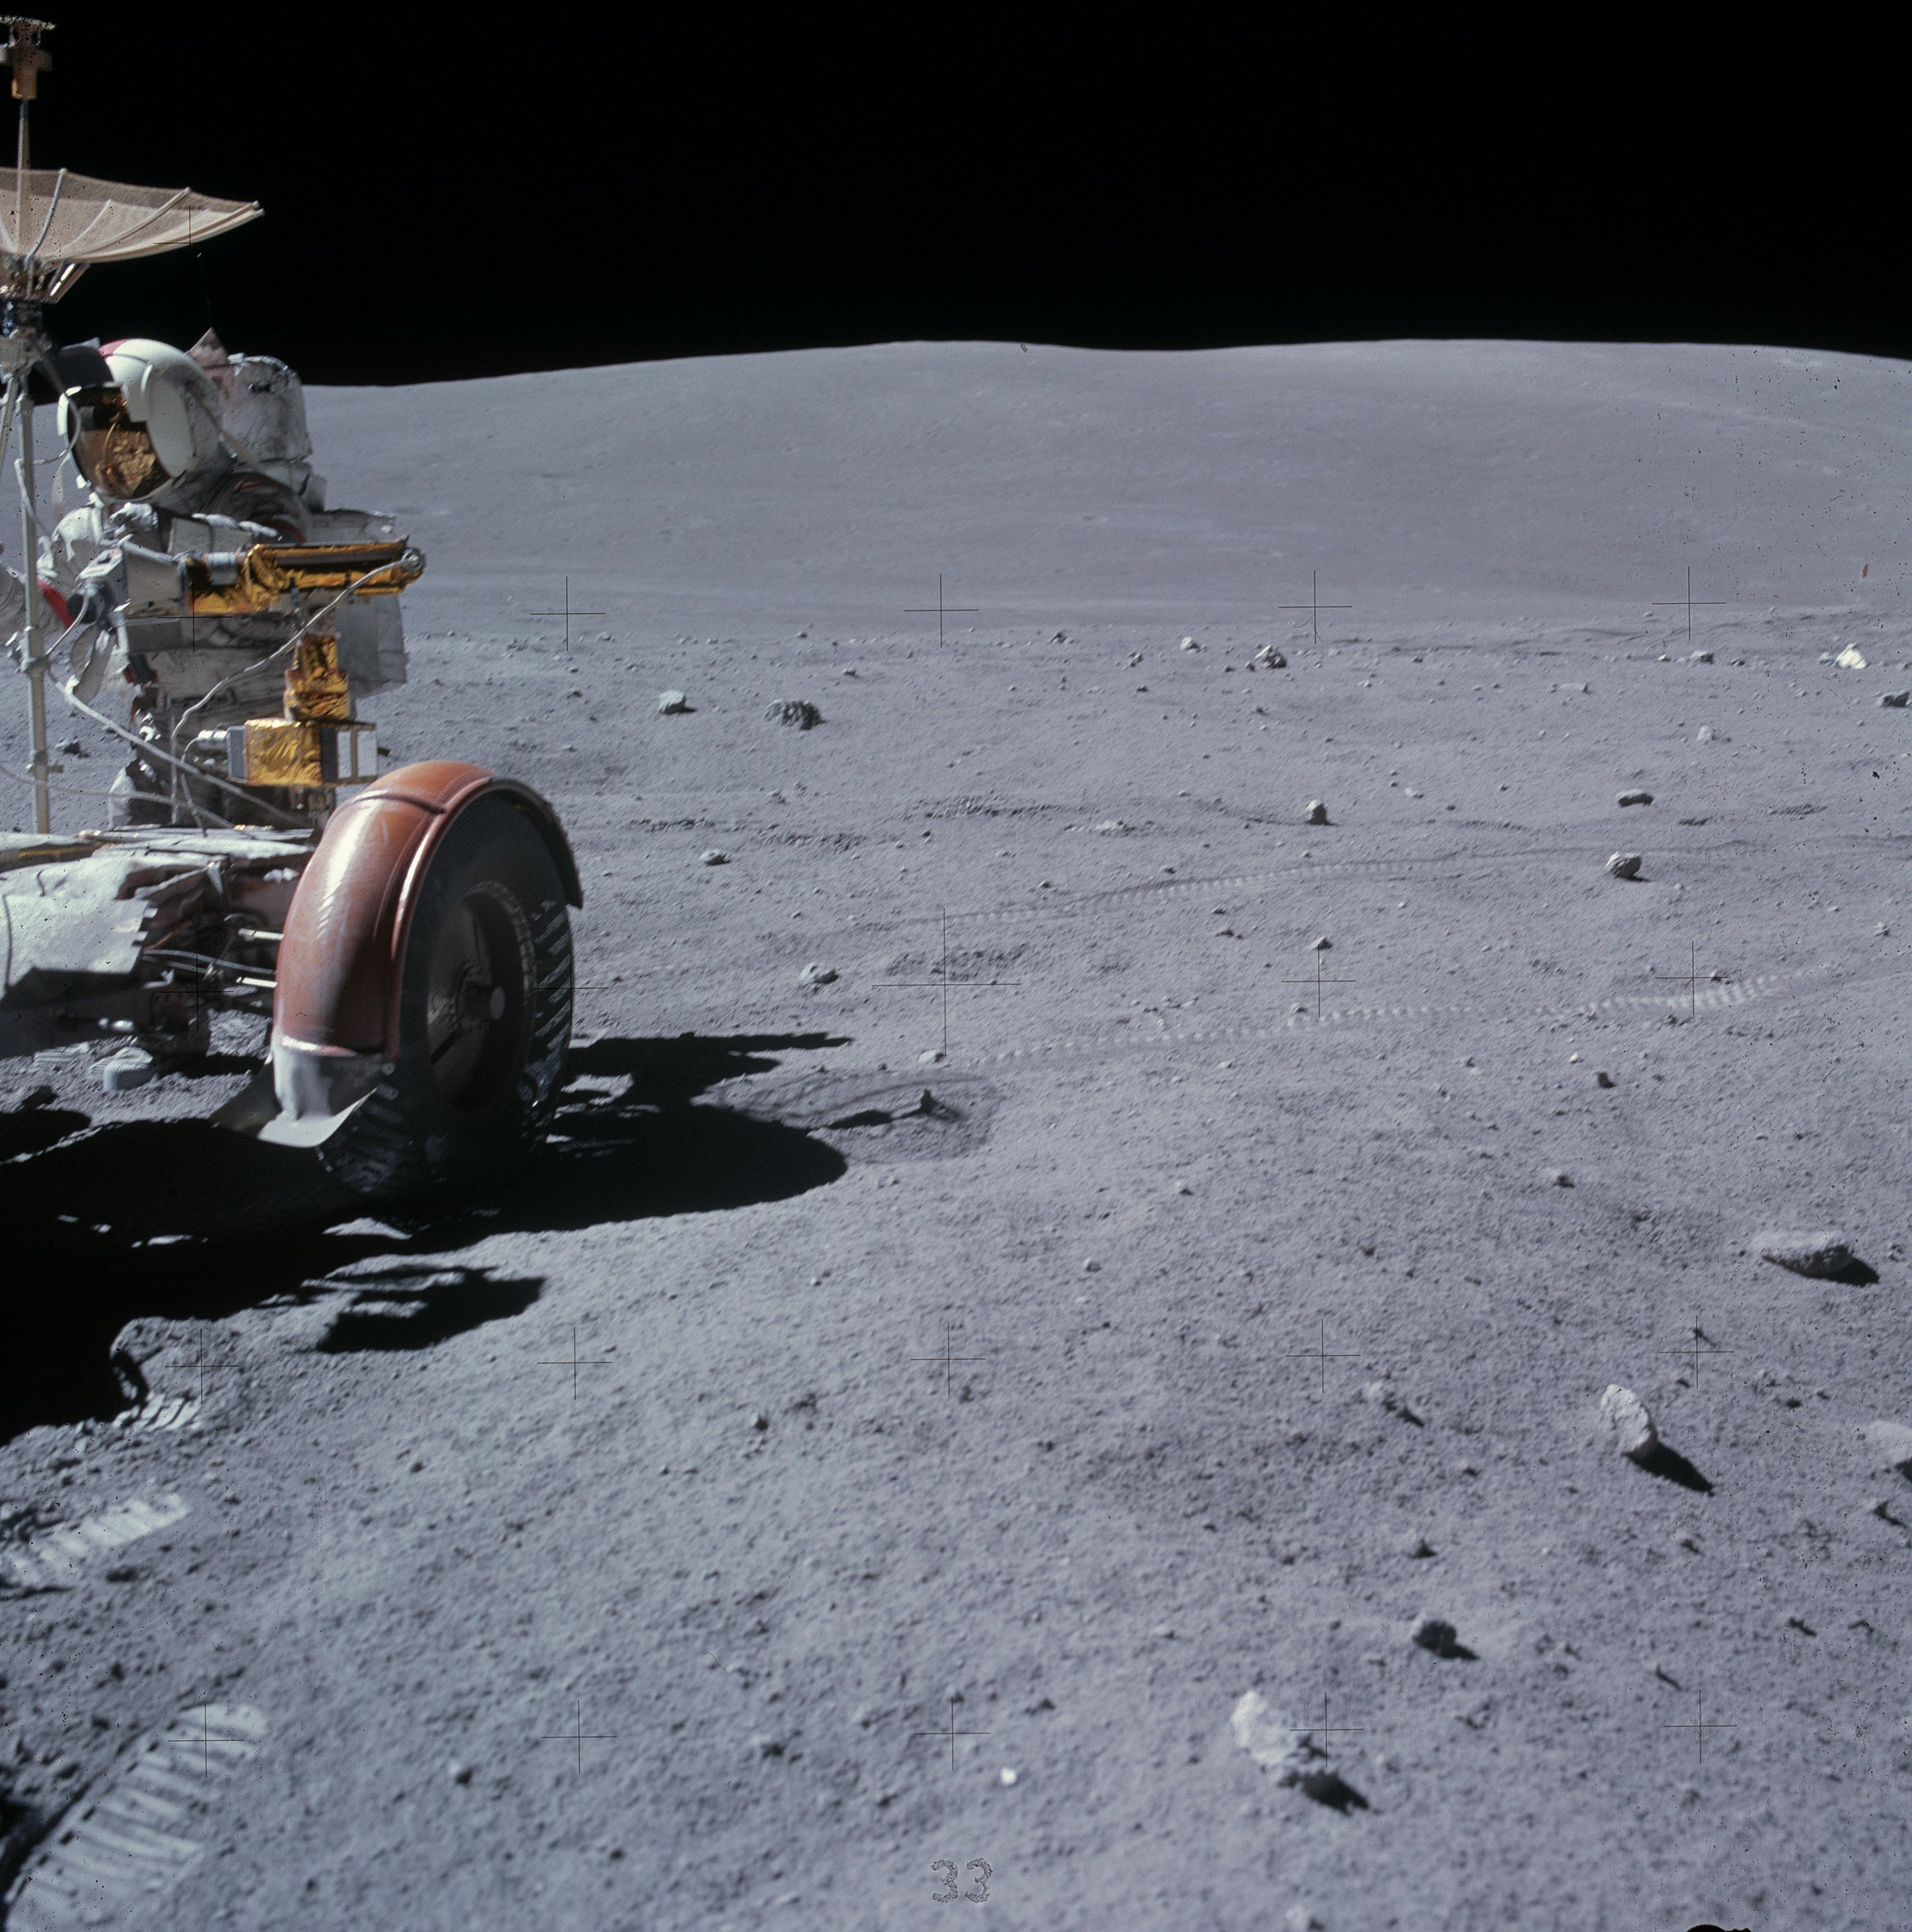 Apollo 16 north pole images The Moon - Solar System